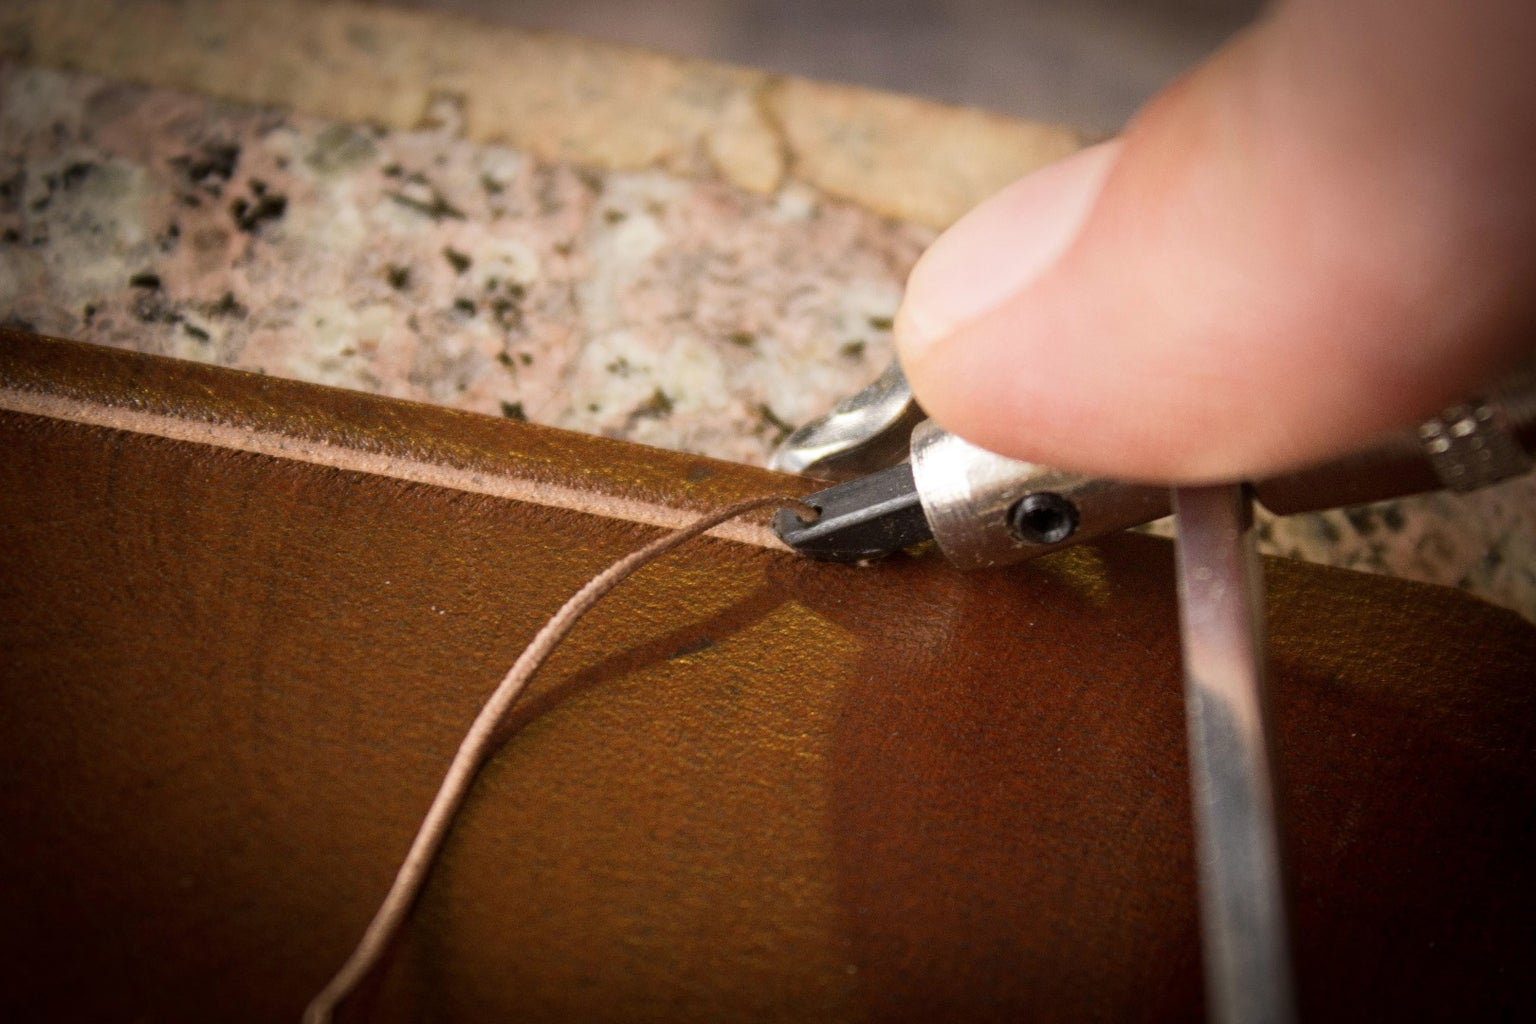 Sewing Channel and Bevel